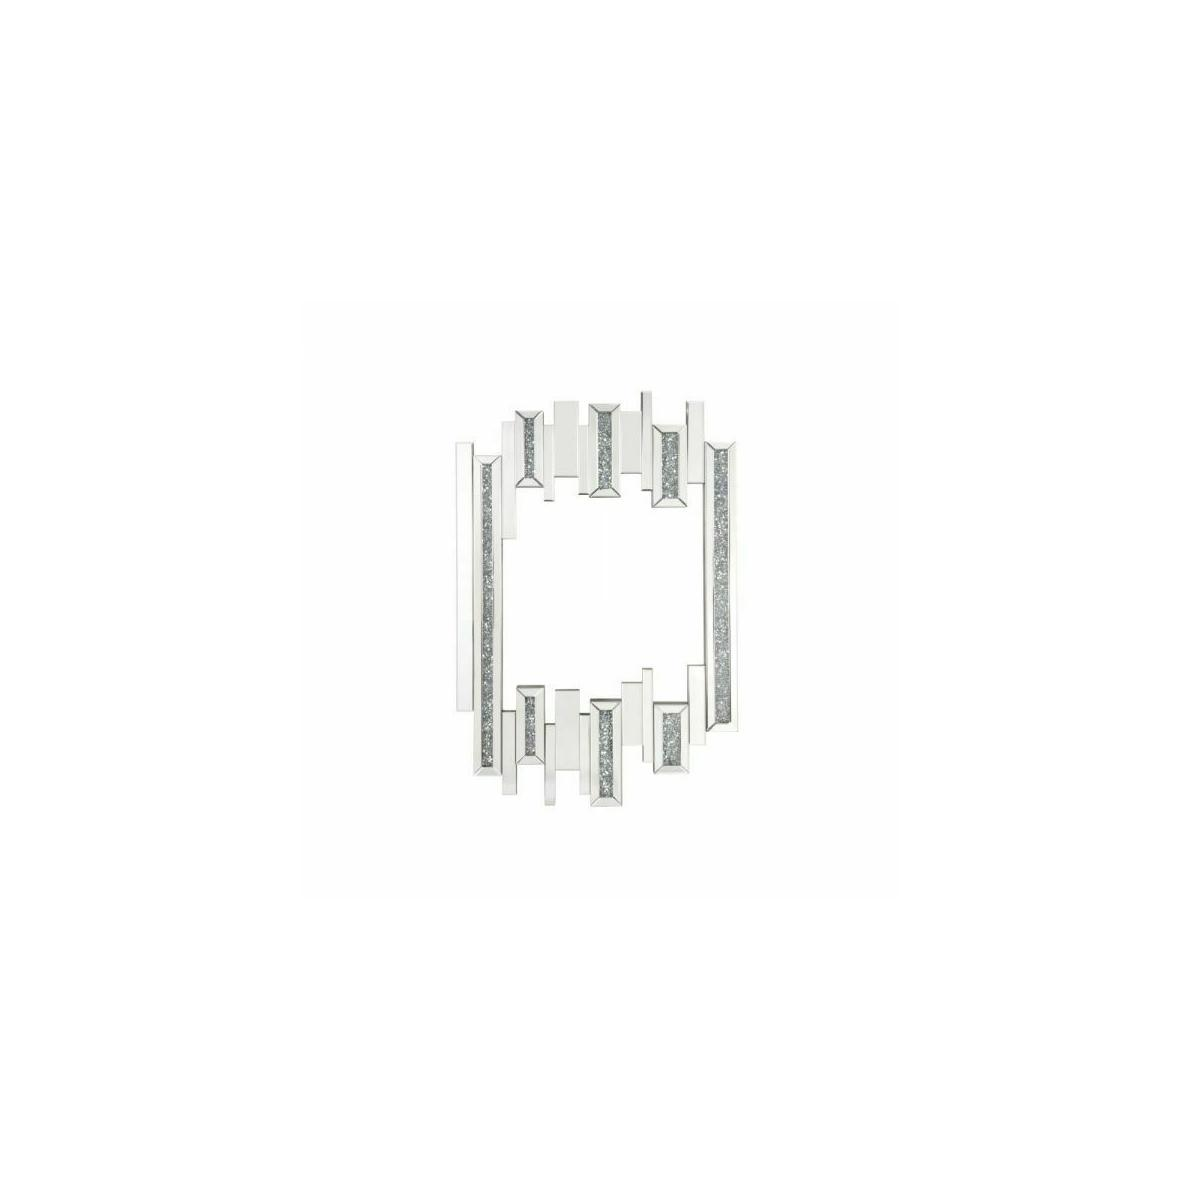 ACME Noralie Wall Decor - 97715 - Glam - Mirror, Glass, MDF, Faux Diamonds (Acrylic), LED - Mirrored and Faux Diamonds